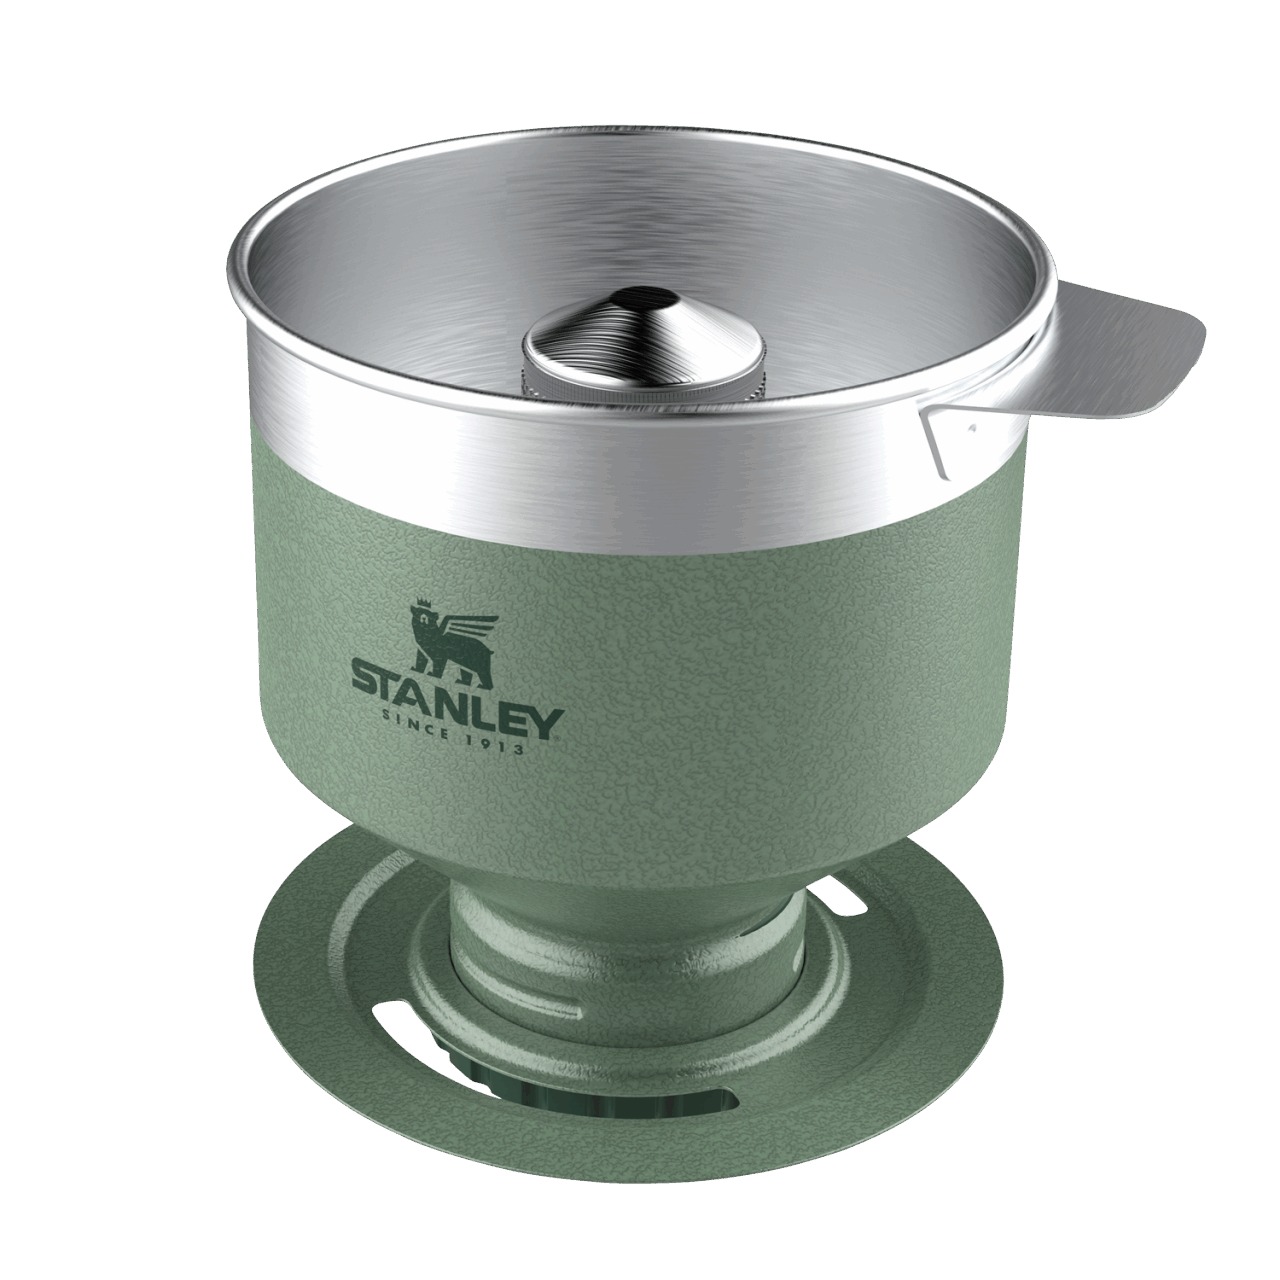 Stanley Classic Food Container 0,72L - green